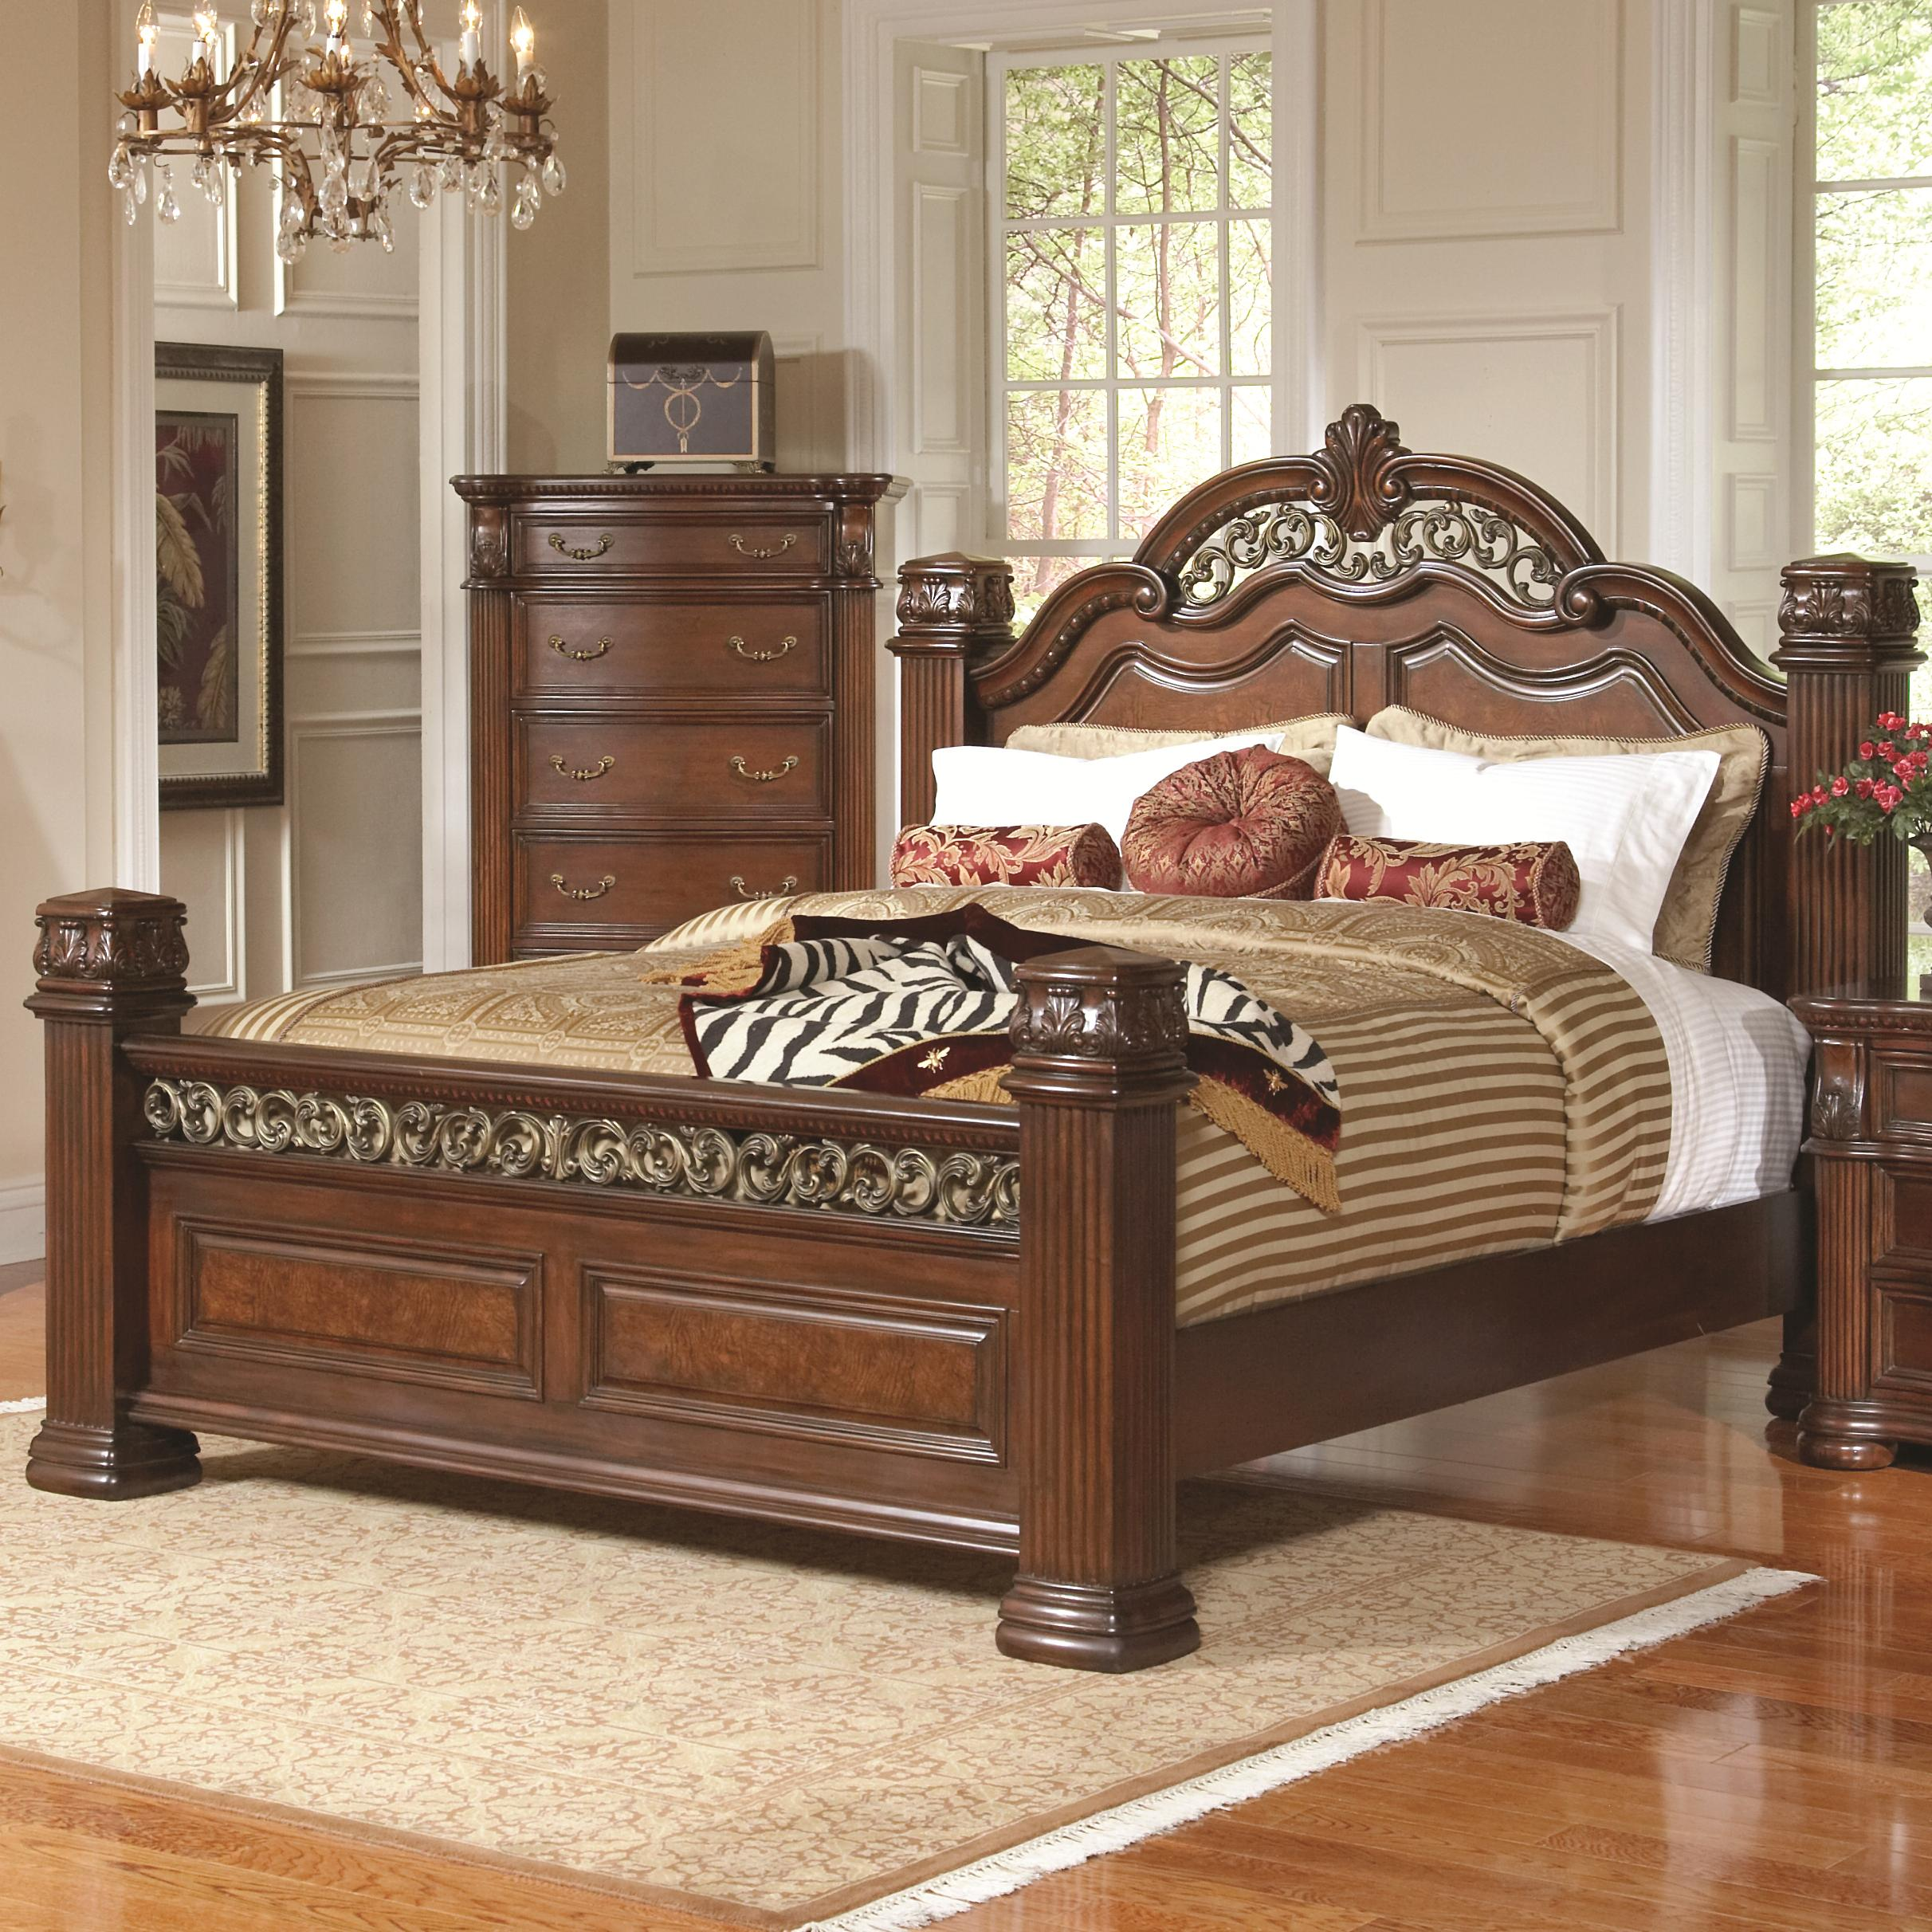 Cozy comparing leather beds with wooden beds by homearena lqsjjmn